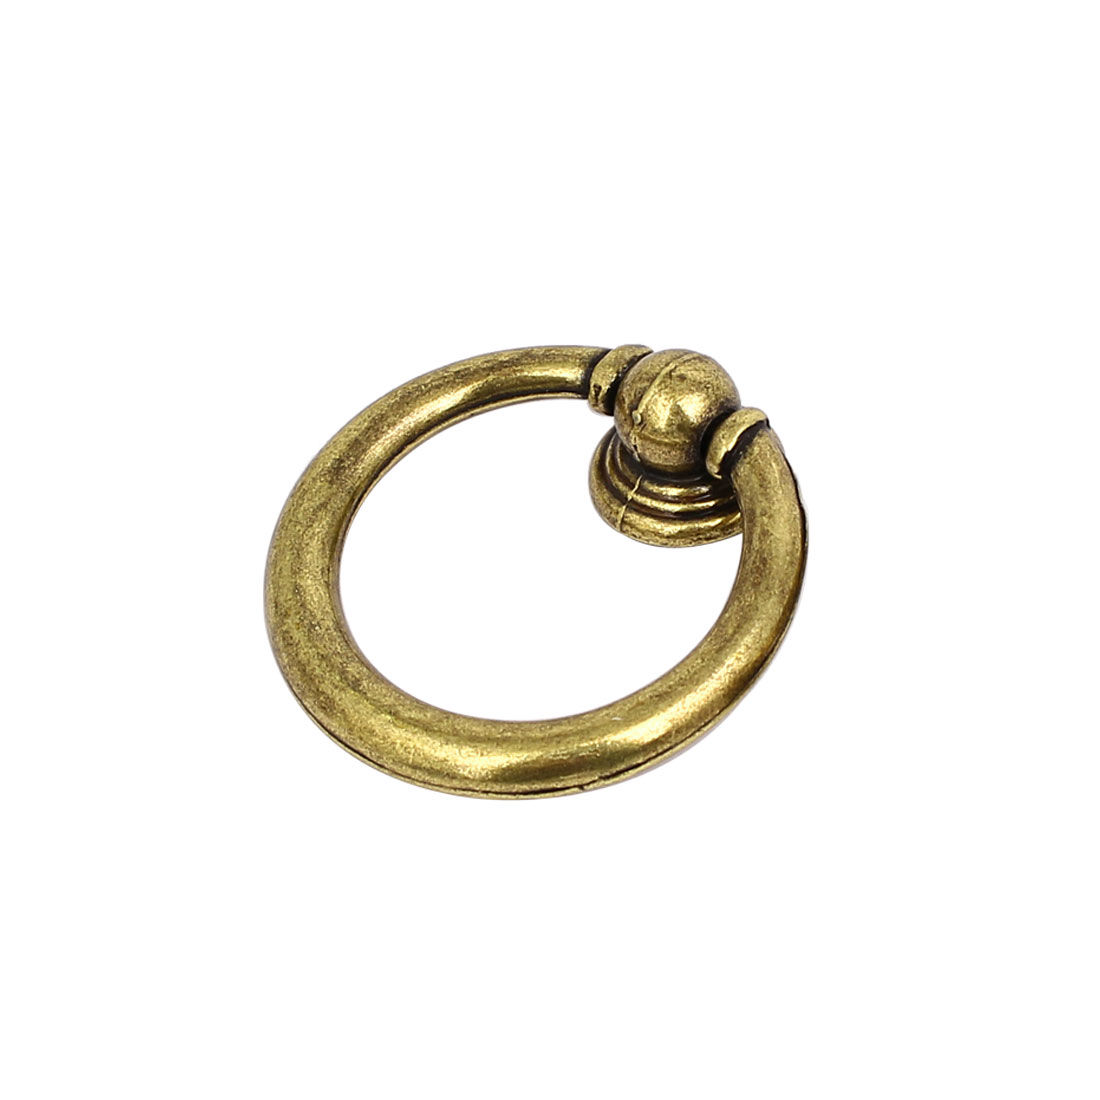 Drawer Dresser Retro Style Metal Round Pull Handle Ring Bronze Tone